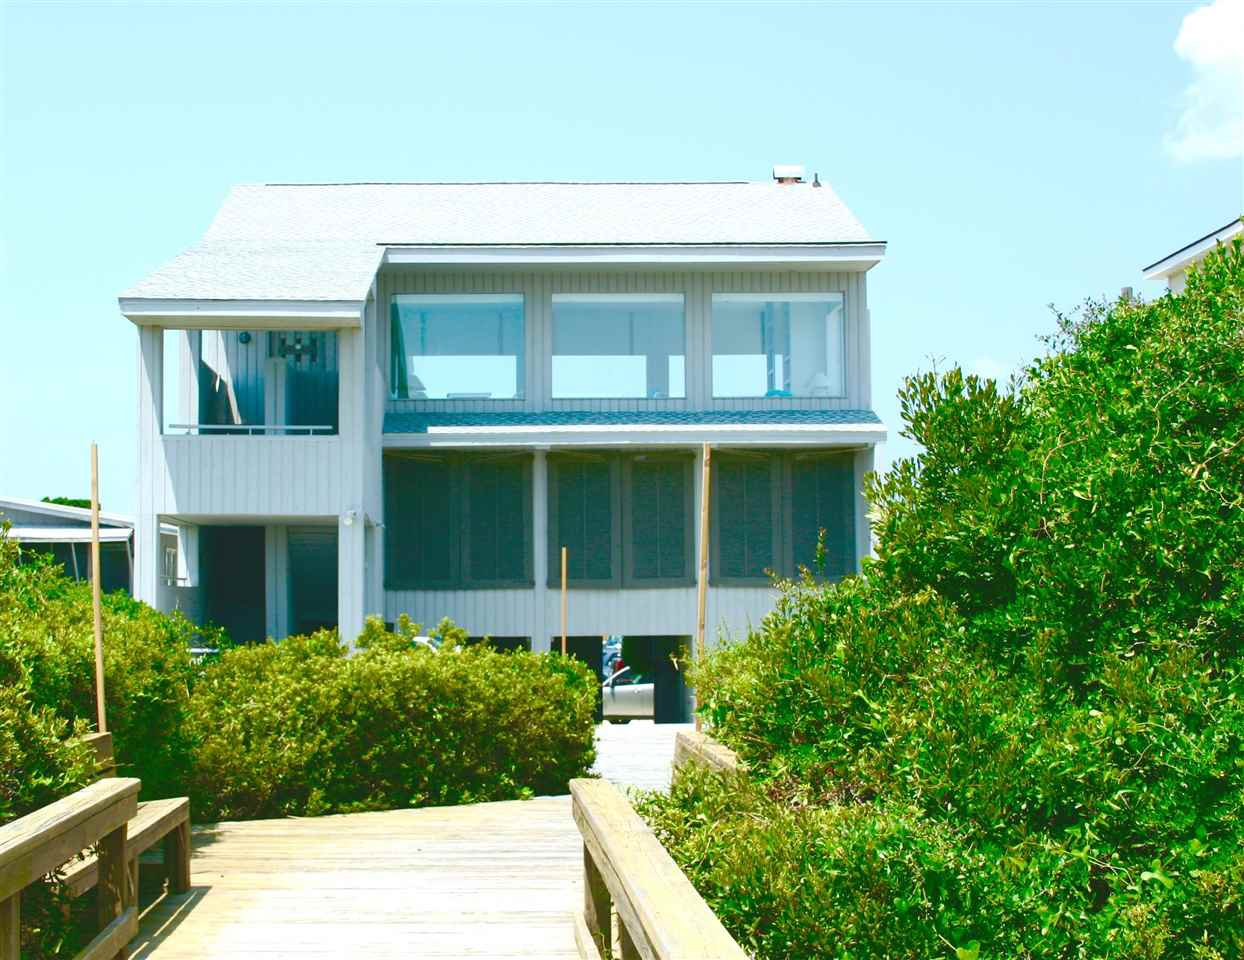 Mls 1802805 Litchfield Plantation 205 All Saints Loop Pawleys Island Property For